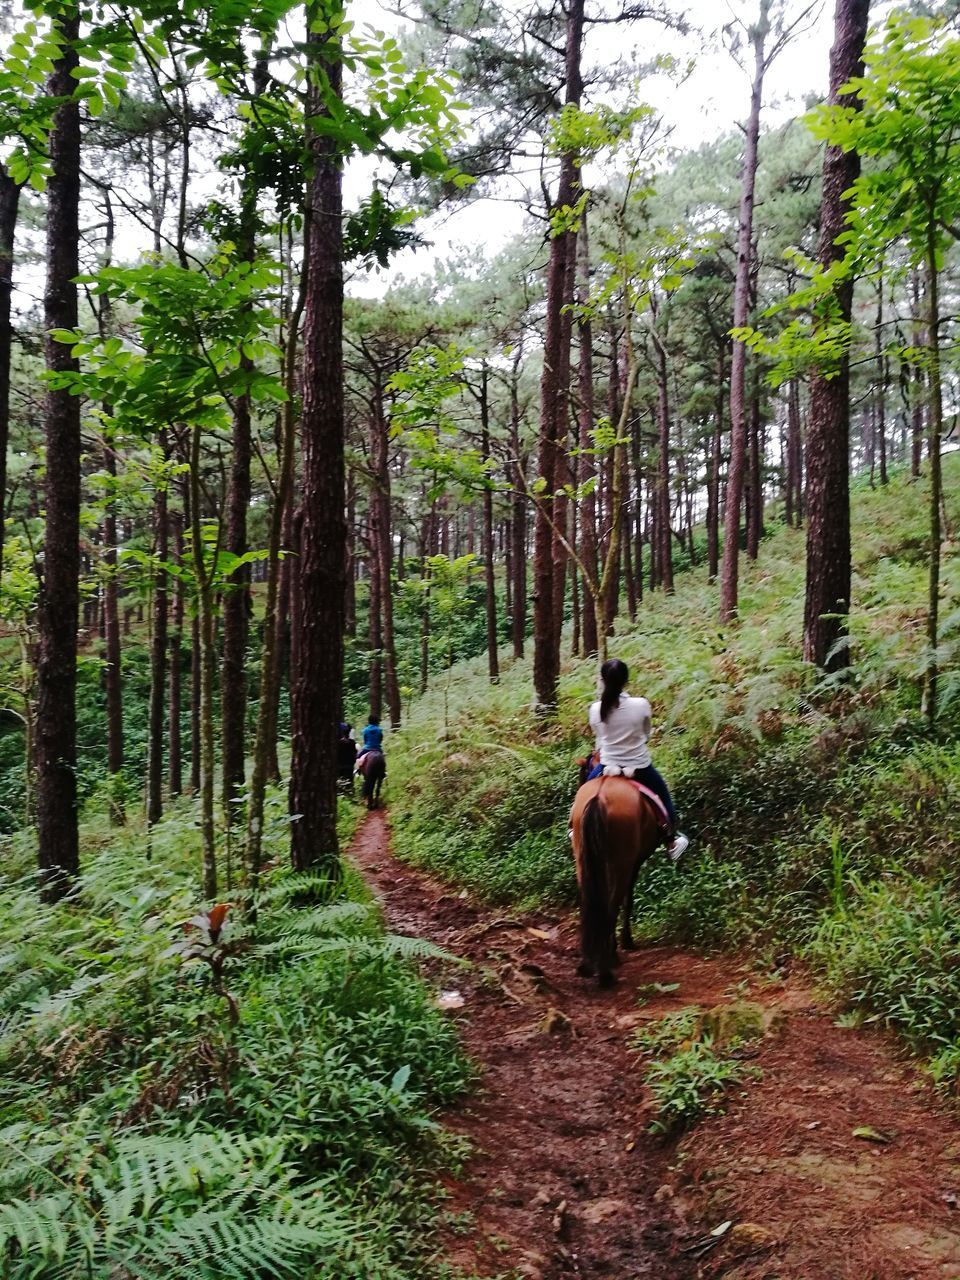 tree, forest, real people, nature, horse, leisure activity, growth, lifestyles, beauty in nature, scenics, day, adventure, men, outdoors, woodland, rear view, mammal, riding, two people, horseback riding, domestic animals, tree trunk, healthy lifestyle, togetherness, mountain bike, sky, people